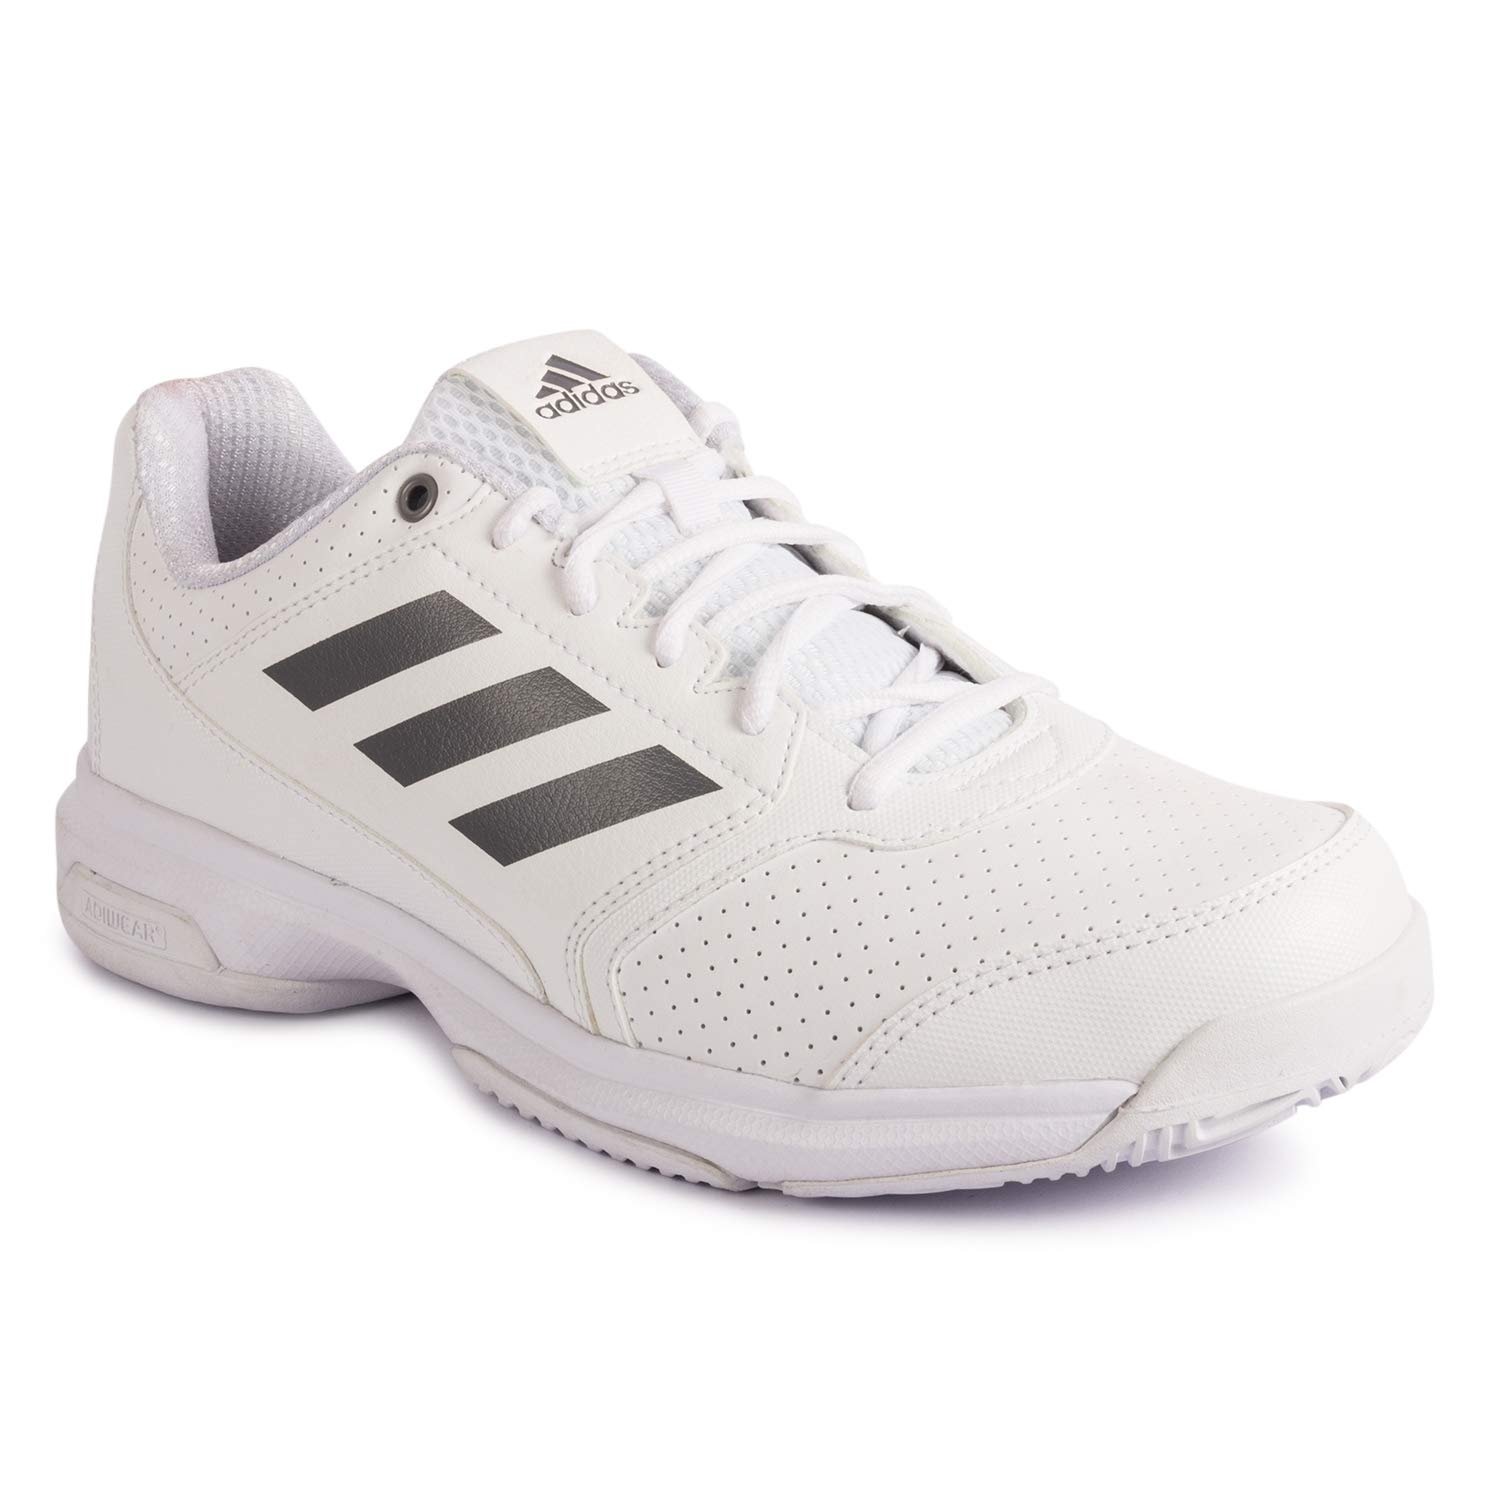 adidas | Adidas Mens Woundrous Ii Tennis Shoes